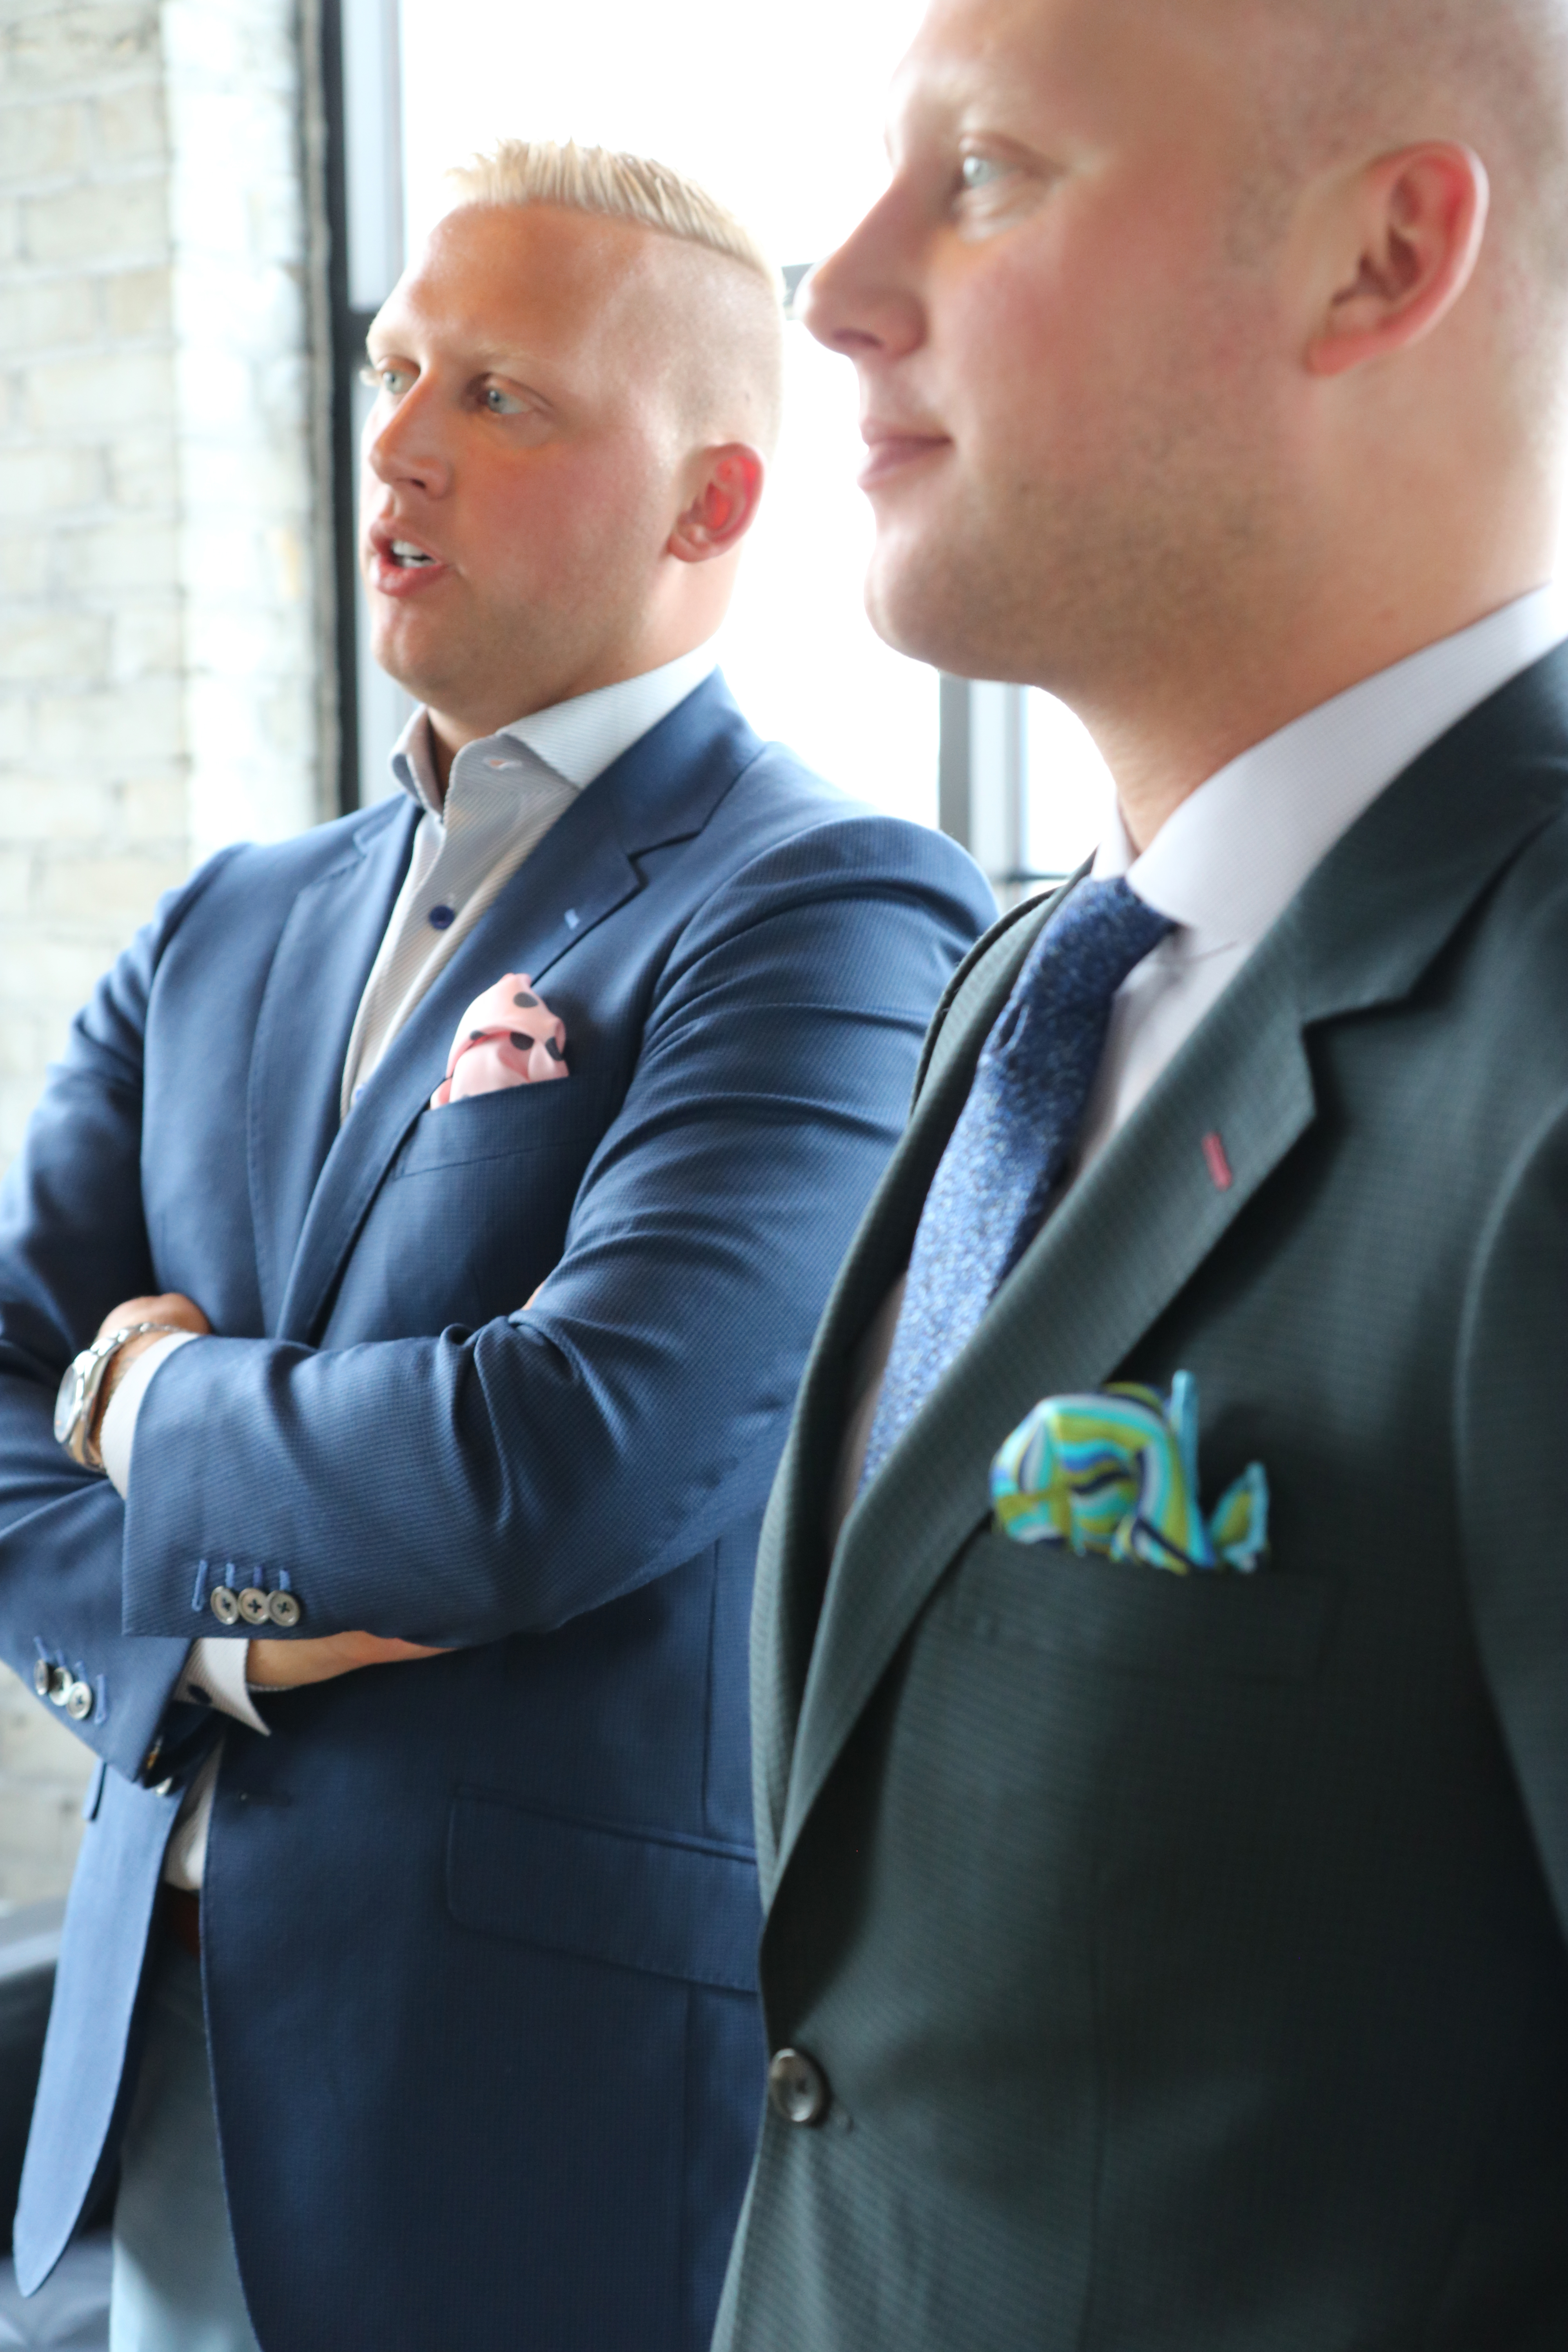 King Brothers Clothiers Bespoke Custom Suits Minneapolis / St Paul MN